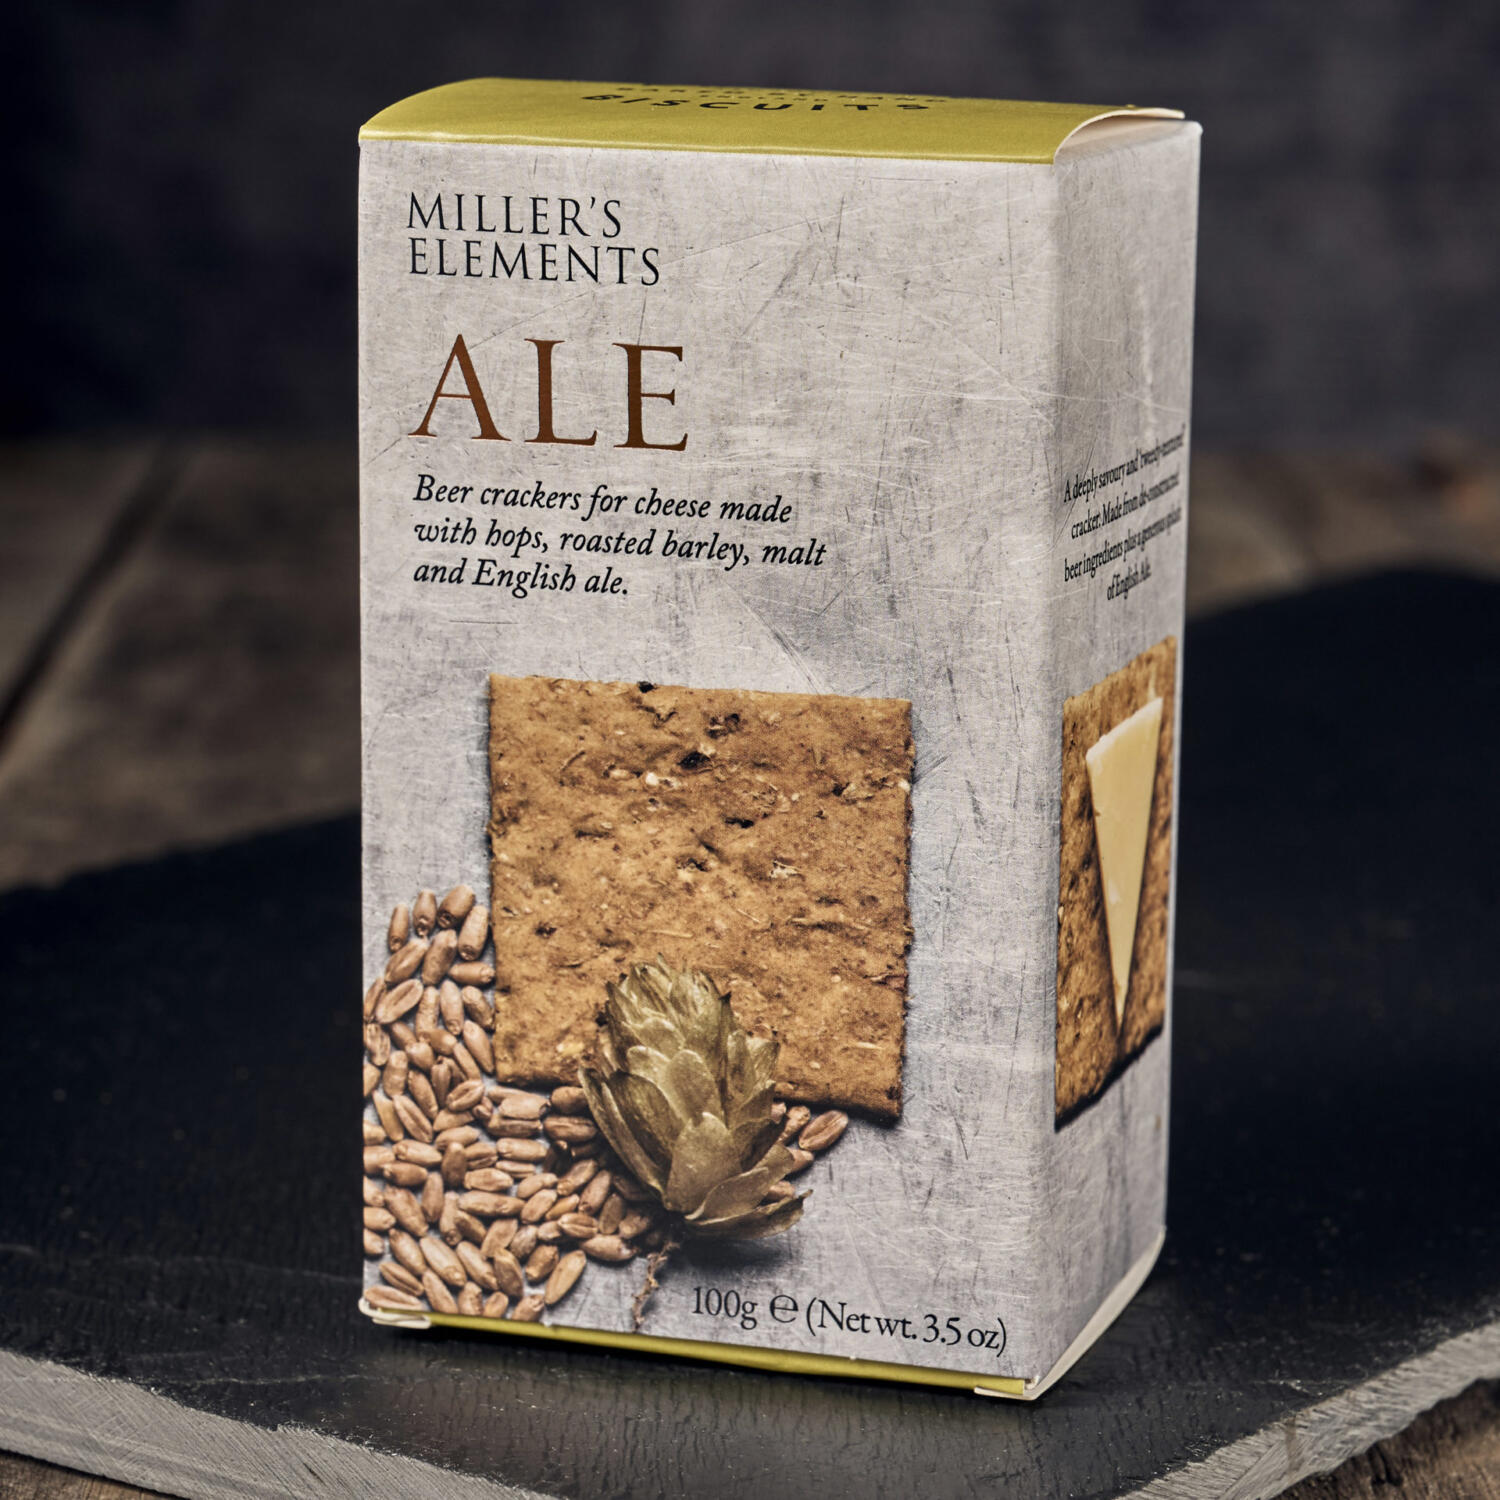 Millers Elements Ale Biscuits